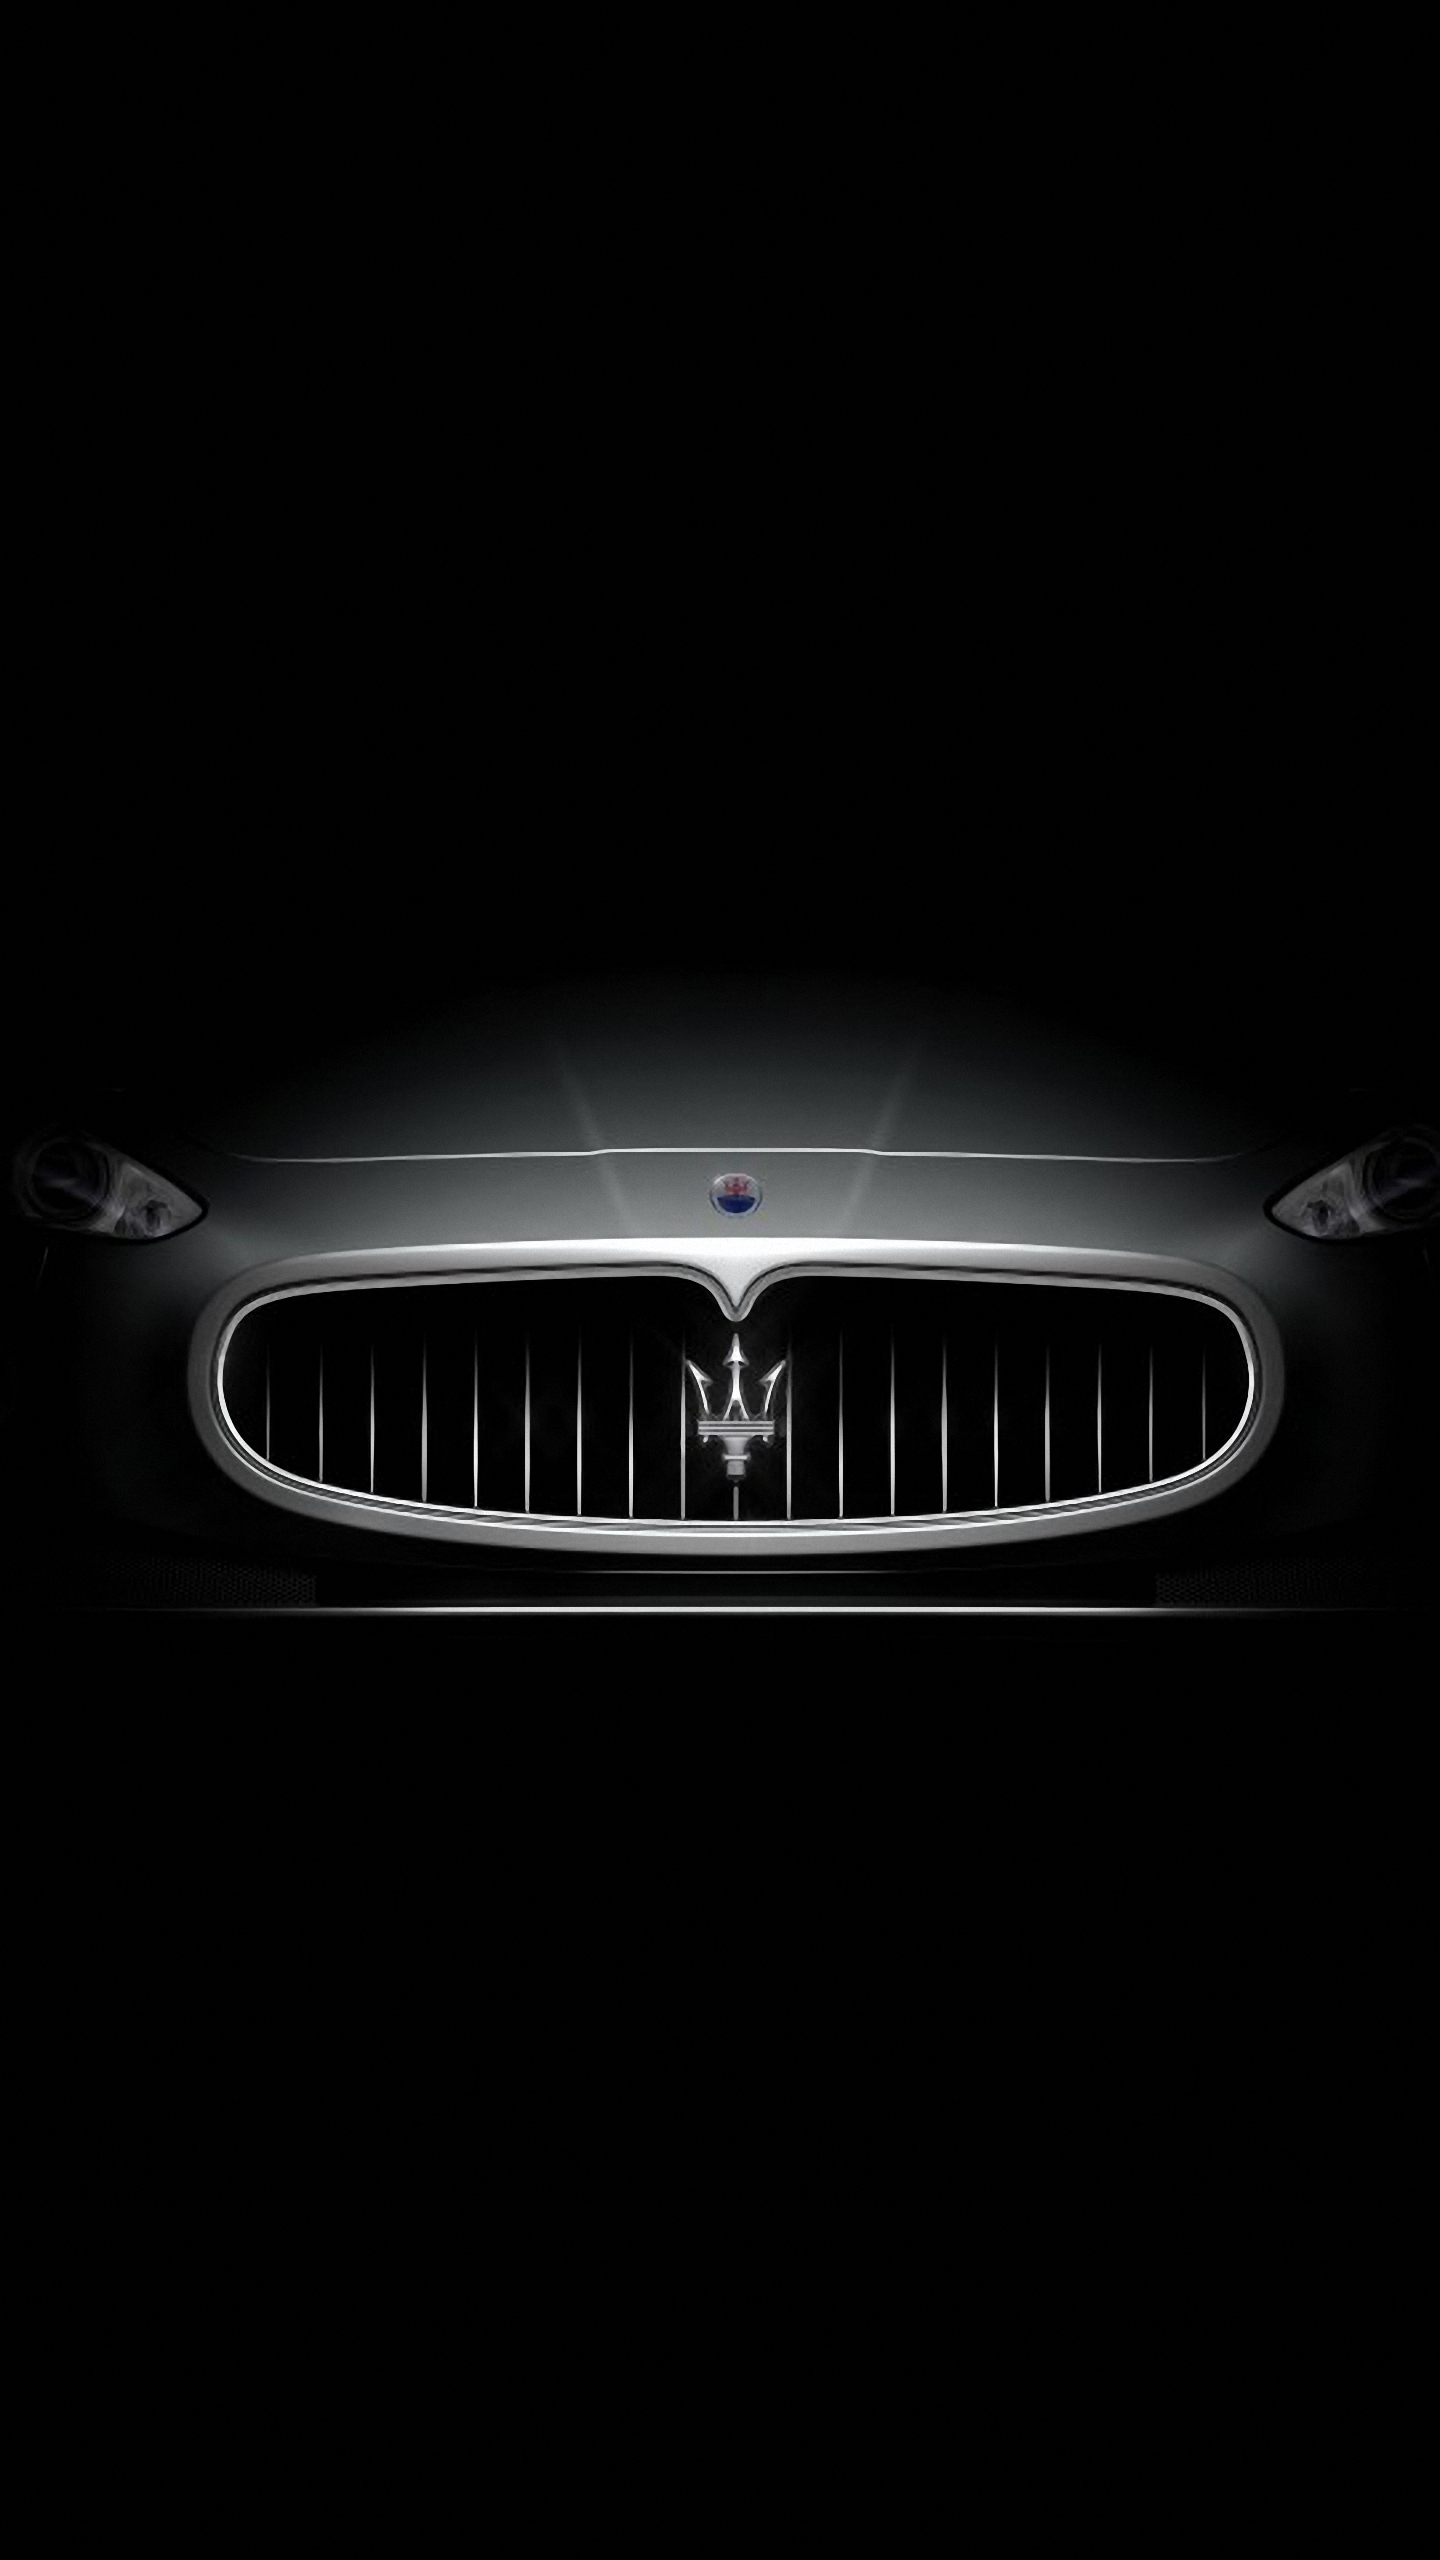 s6 hd 1440x2560 maserati granturismo samsung galaxy s6 wallpapers 1440x2560